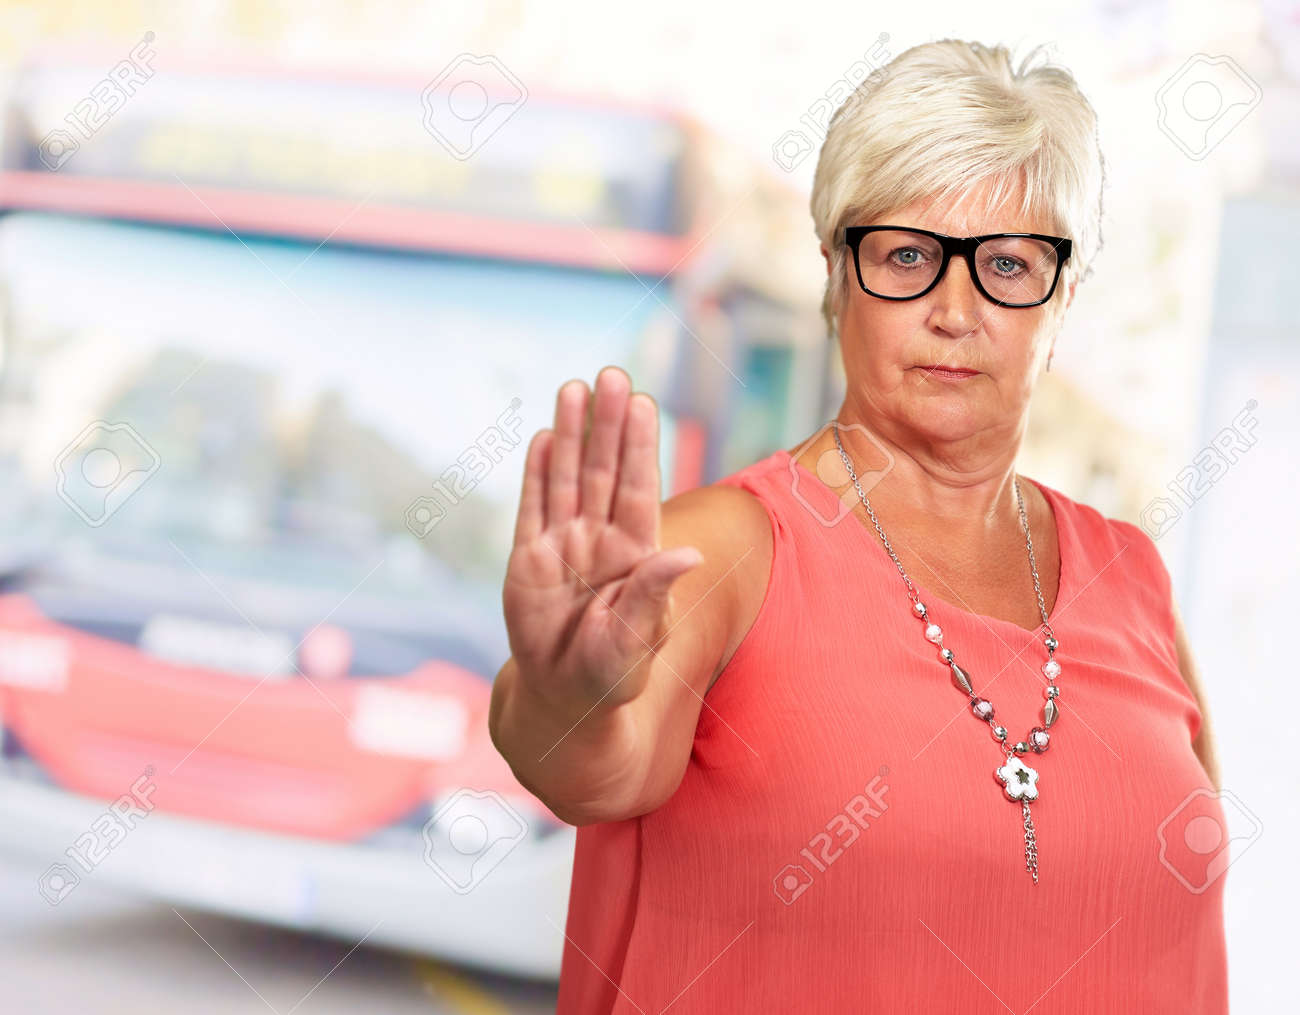 Portrait Of A Senior Woman Showing Stop Sign, Outdoor Stock Photo - 16289498